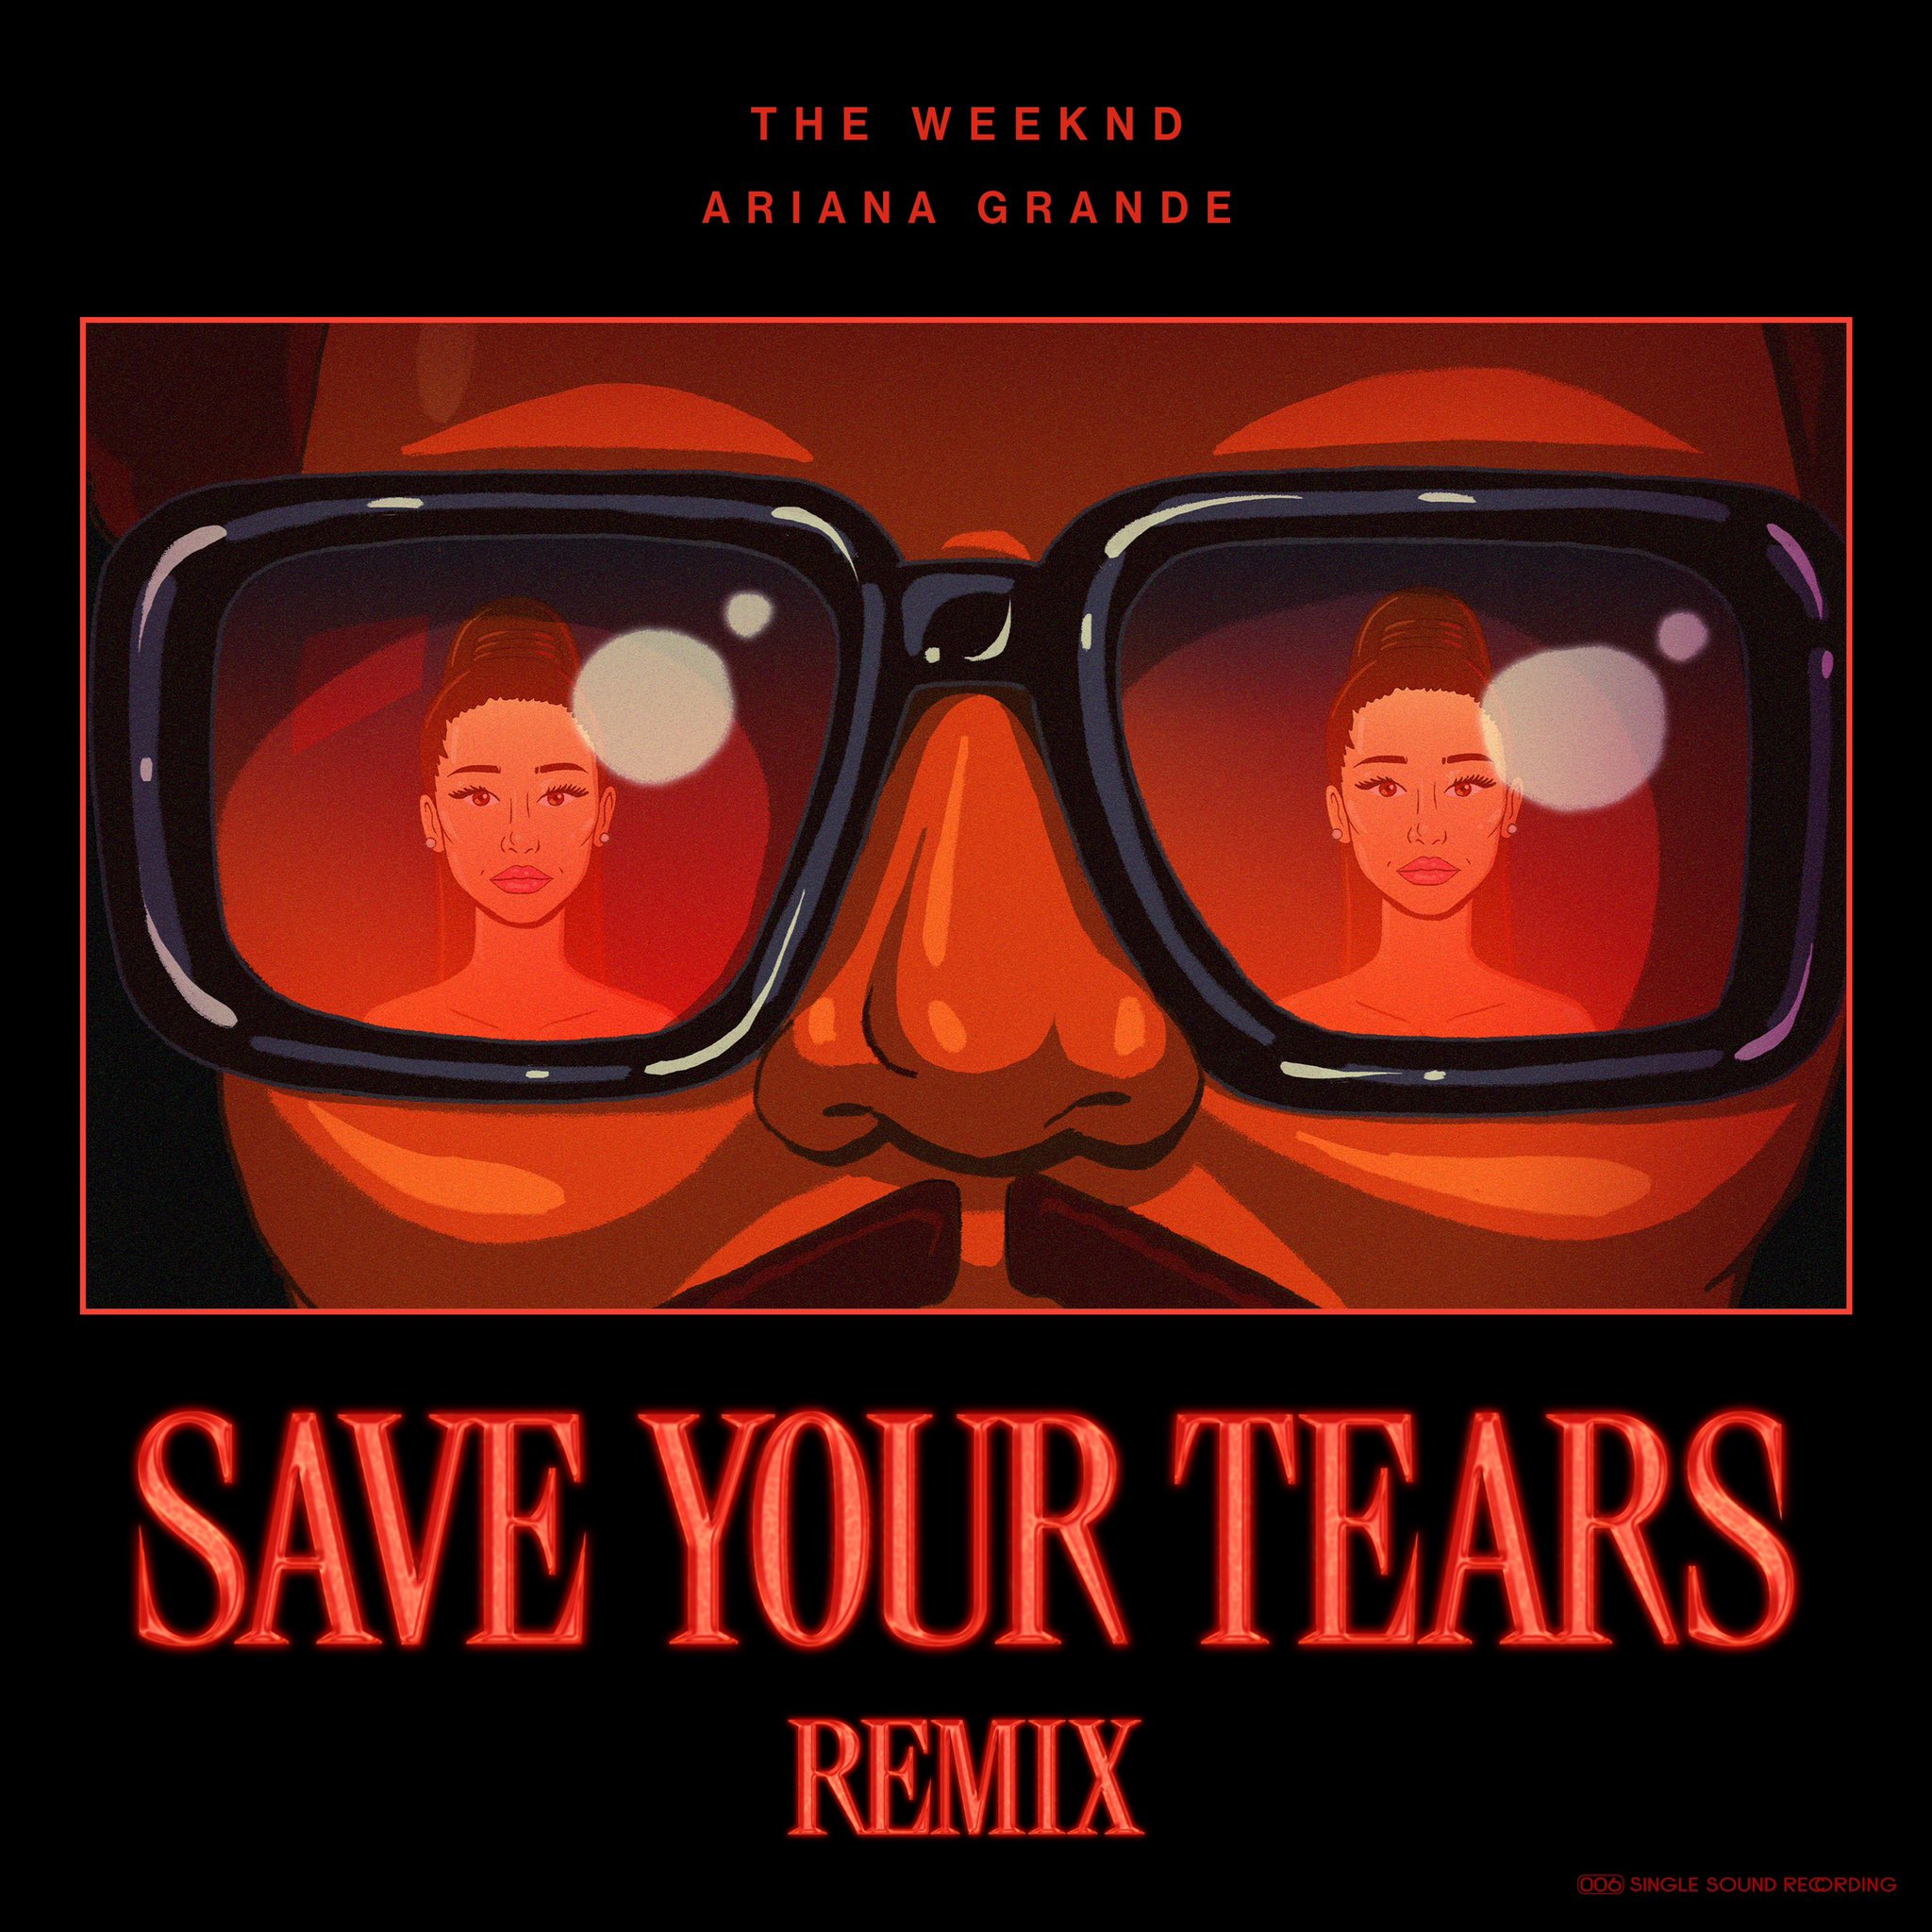 Save Your Tears, Ariana Grande and The Weeknd